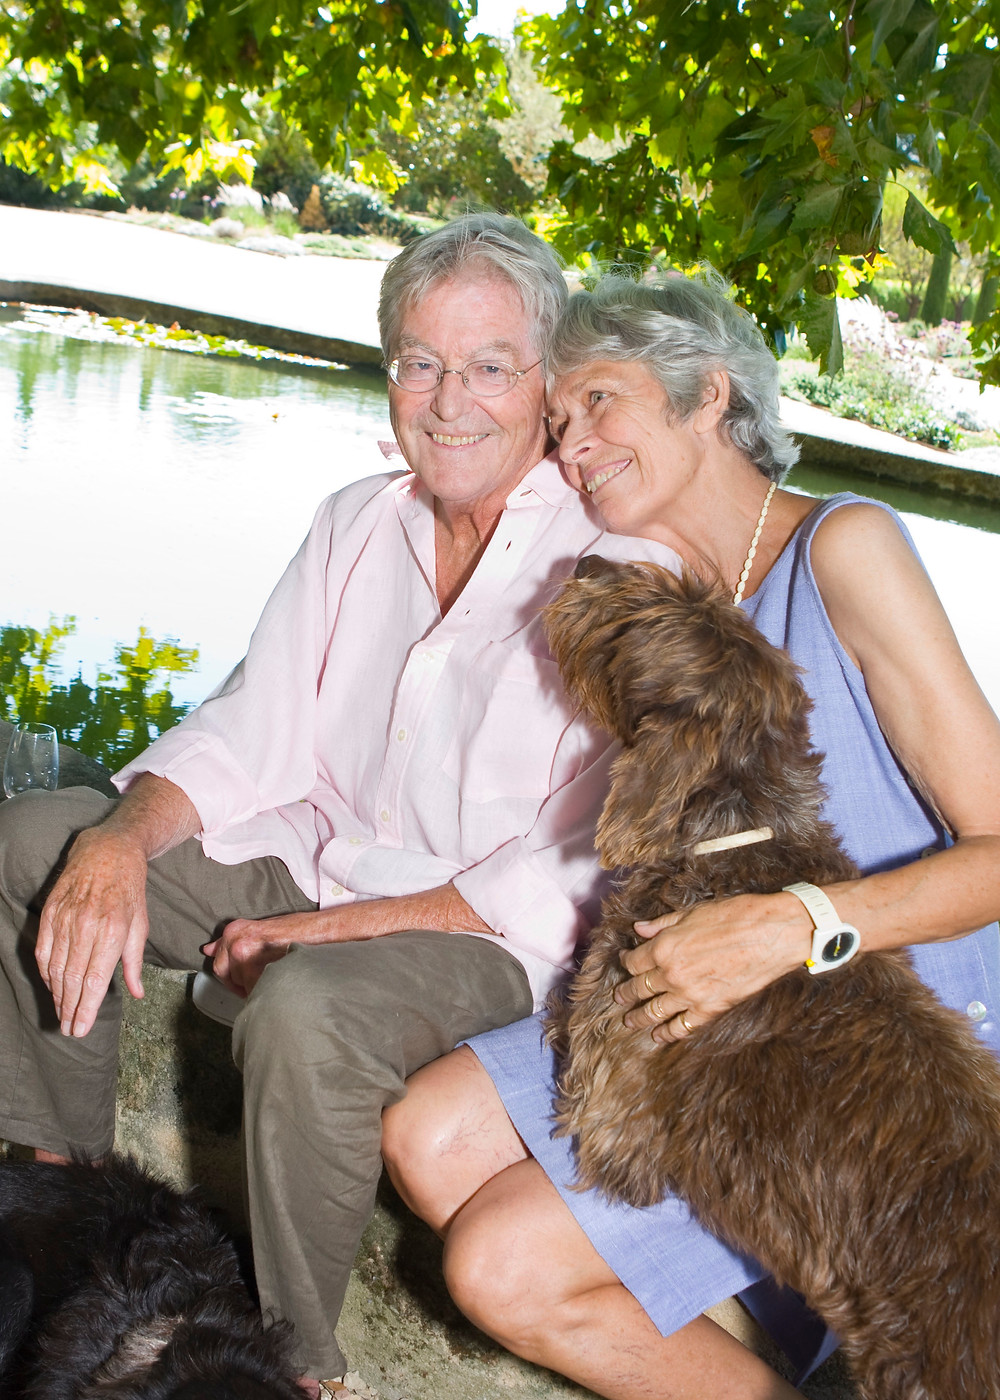 A couple in love, and their dog